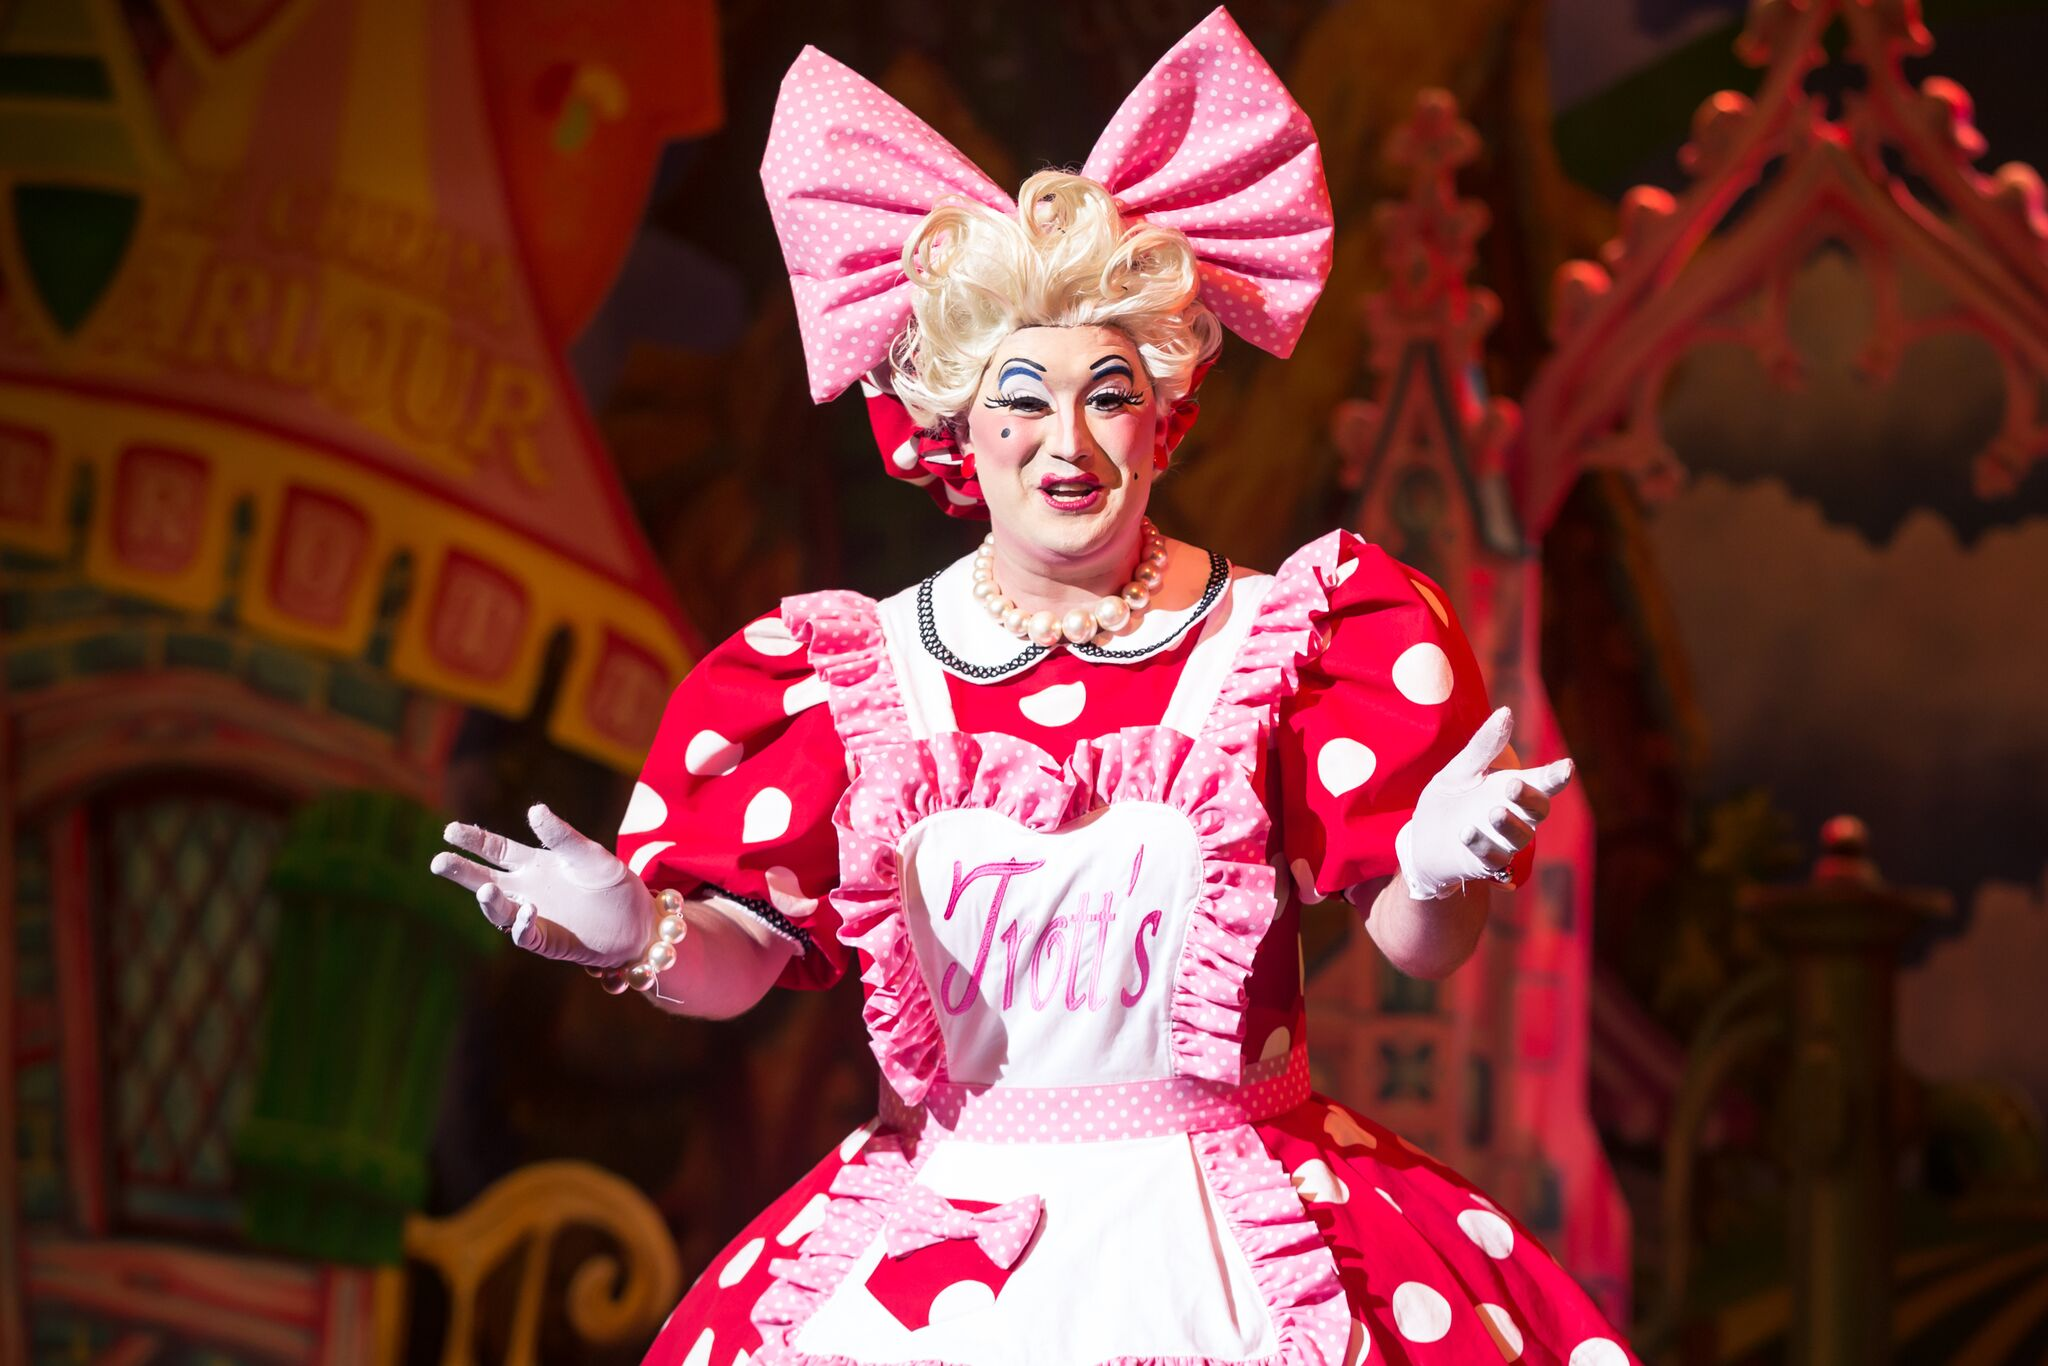 Photo shows Antony-Stuart-Hicks as 'Dolly Trott' she is a red polkadot dress with the base colour being bright red with white dots. She is also wearing a bright pink boe on her head.